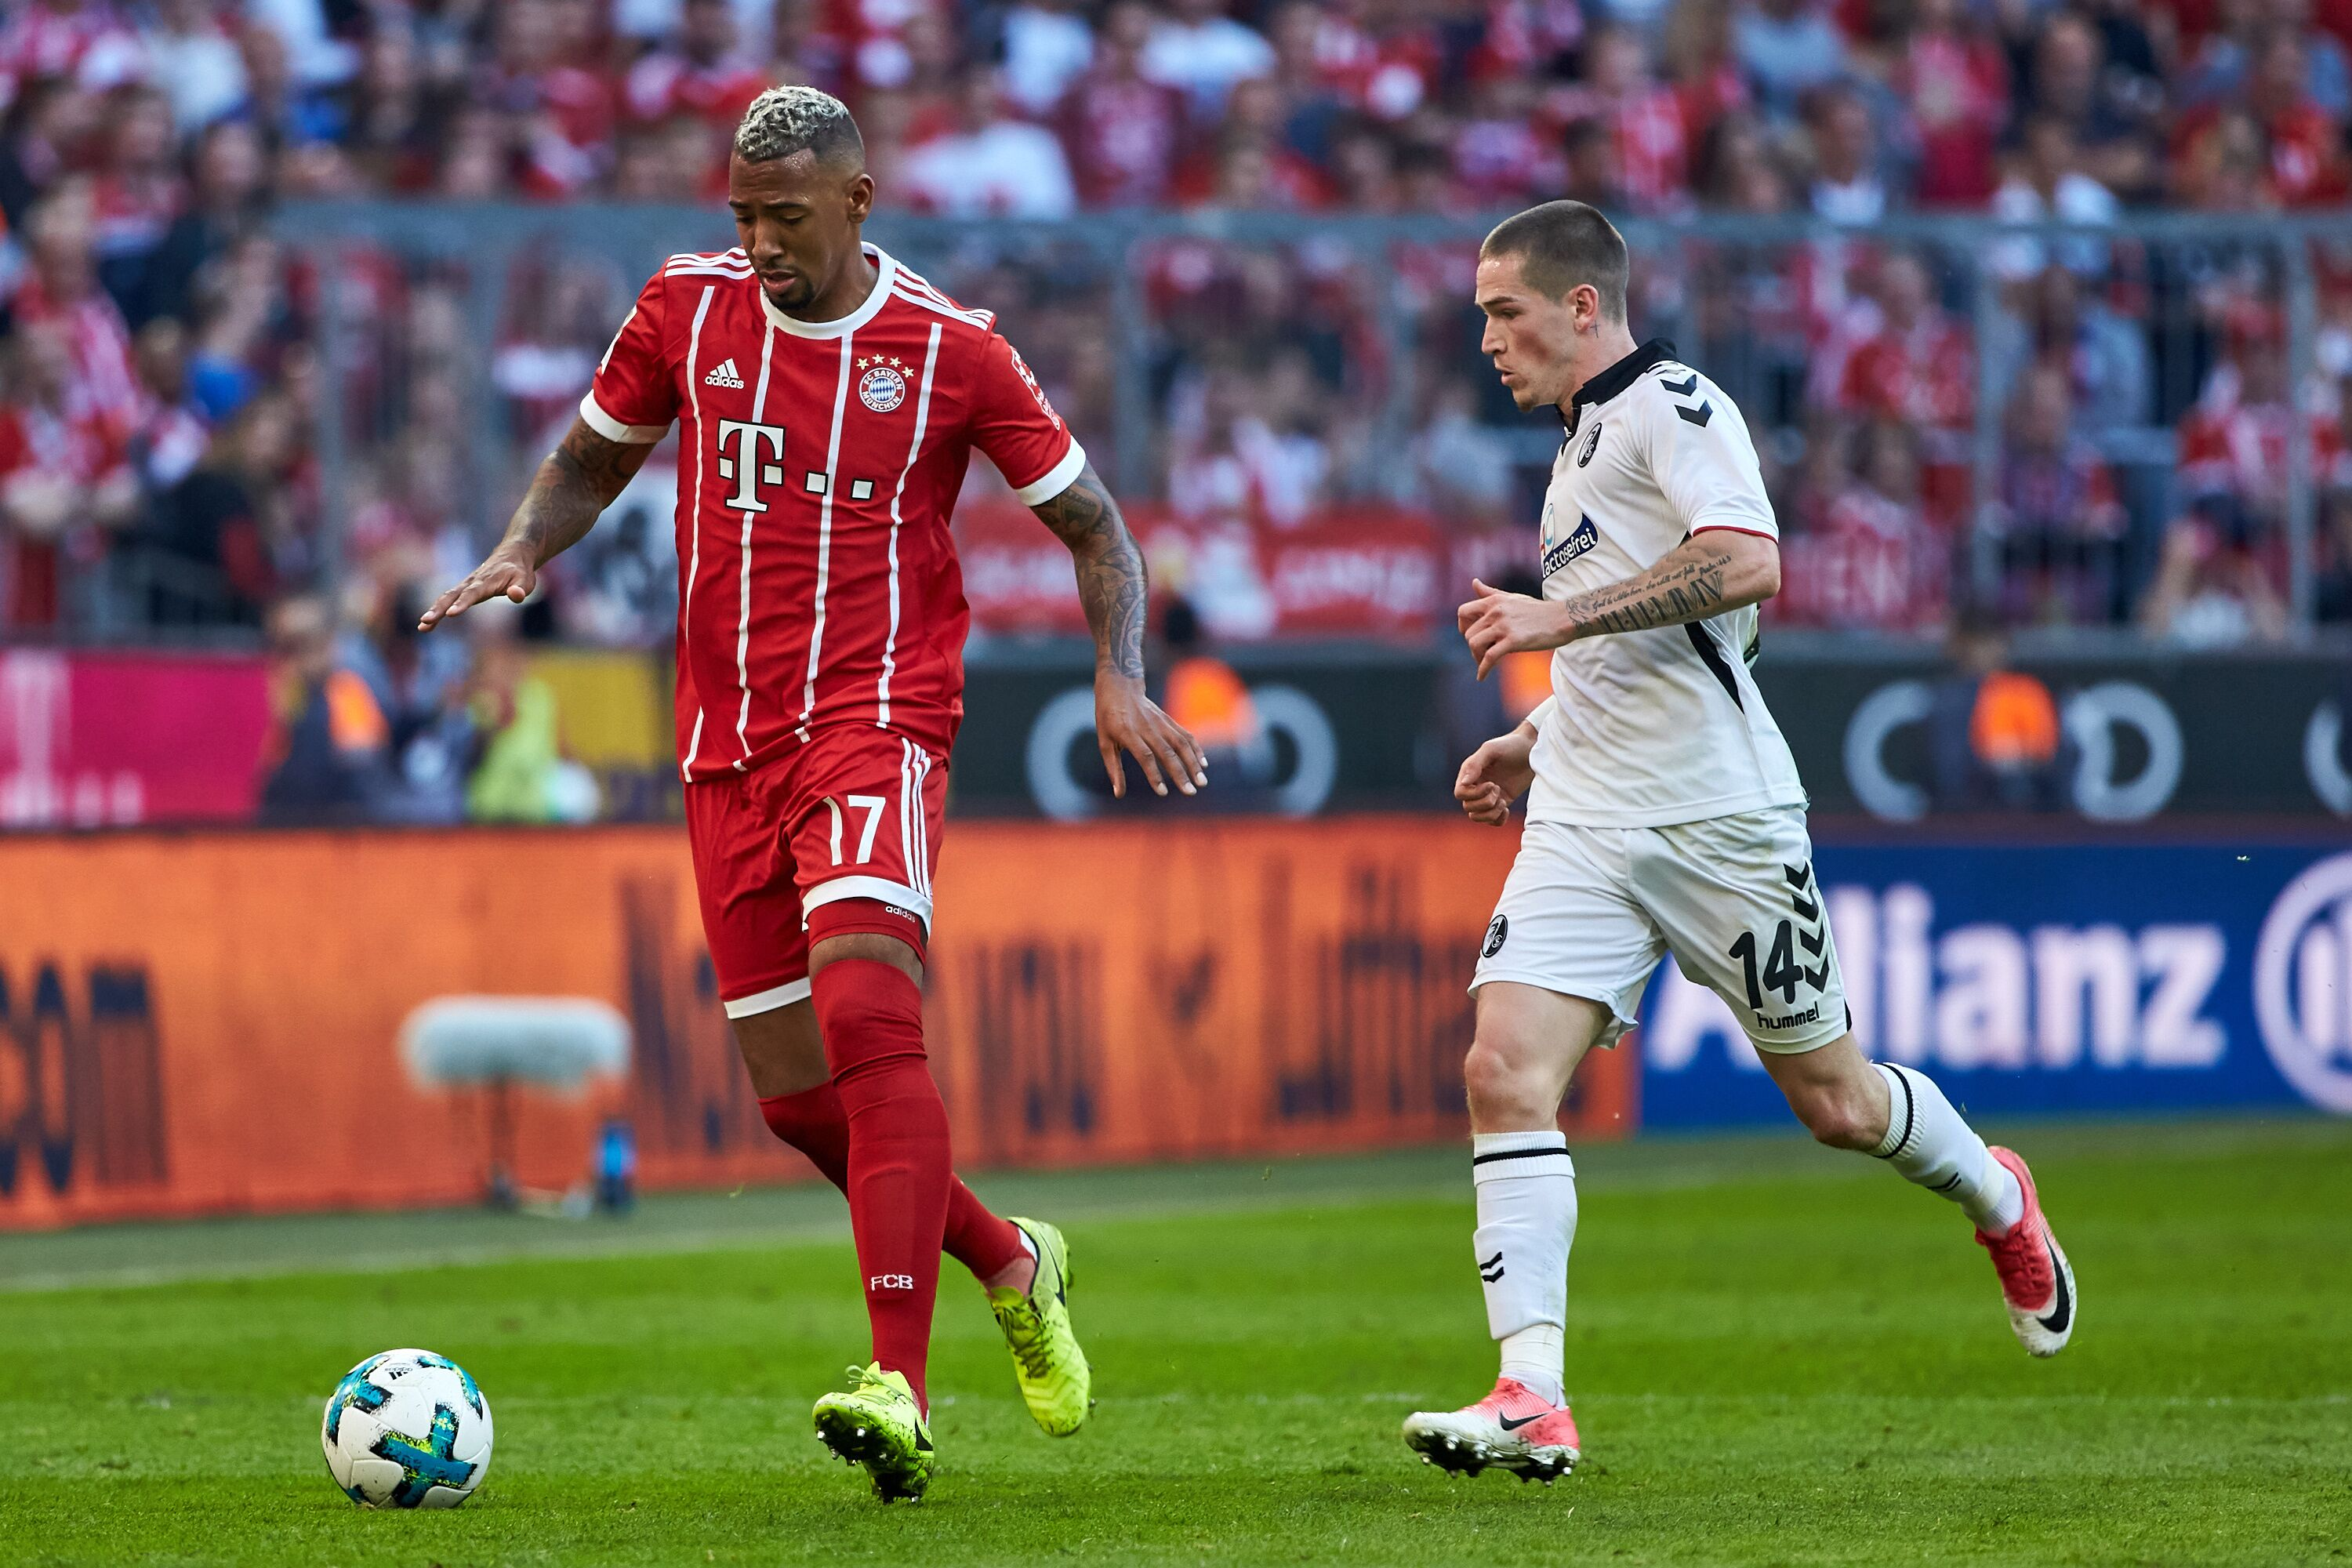 8bff9a5a588 Bayern Munich travel away to Freiburg in matchday 25 of the Bundesliga